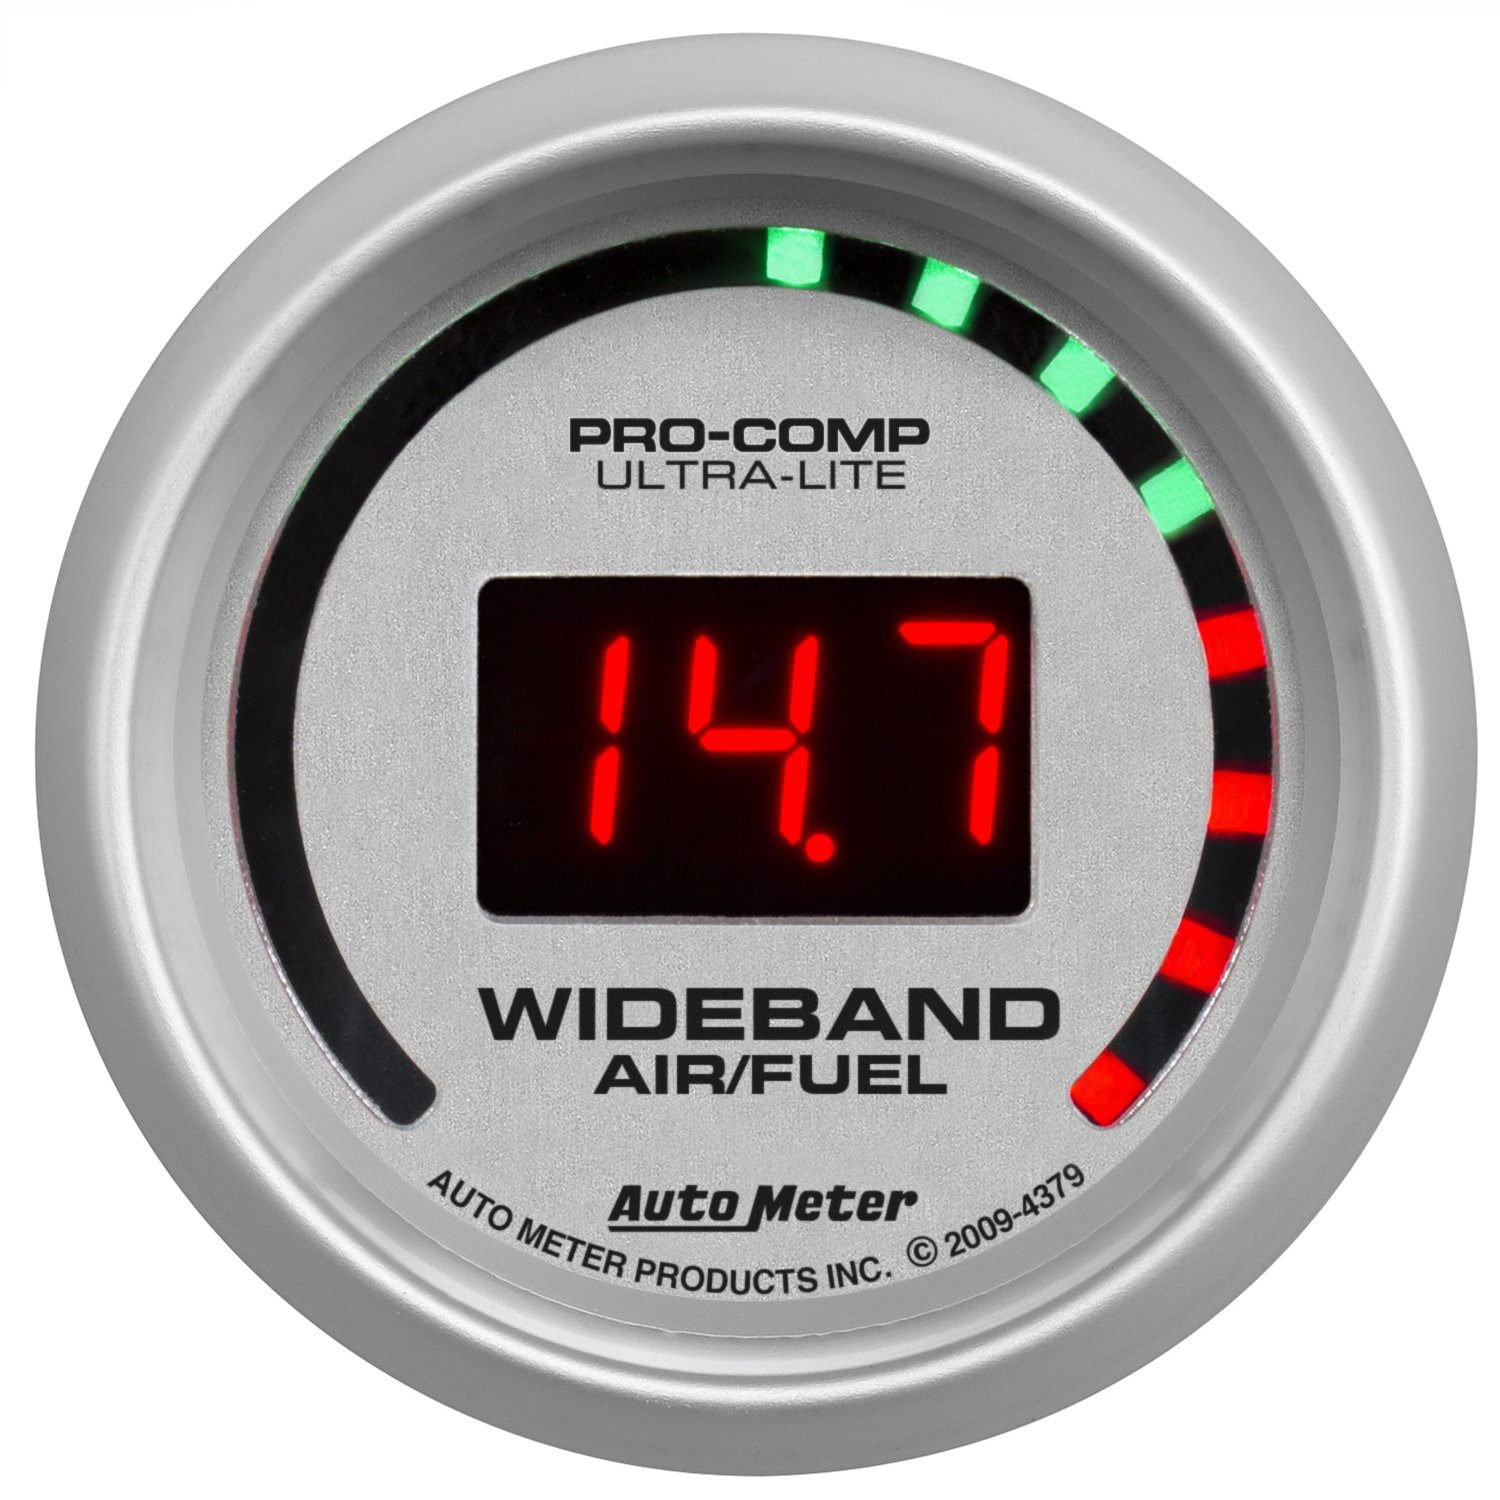 Auto Meter 4379 Ultra-Lite Wide Band Air Fuel Ratio Kit by Auto Meter (Image #1)